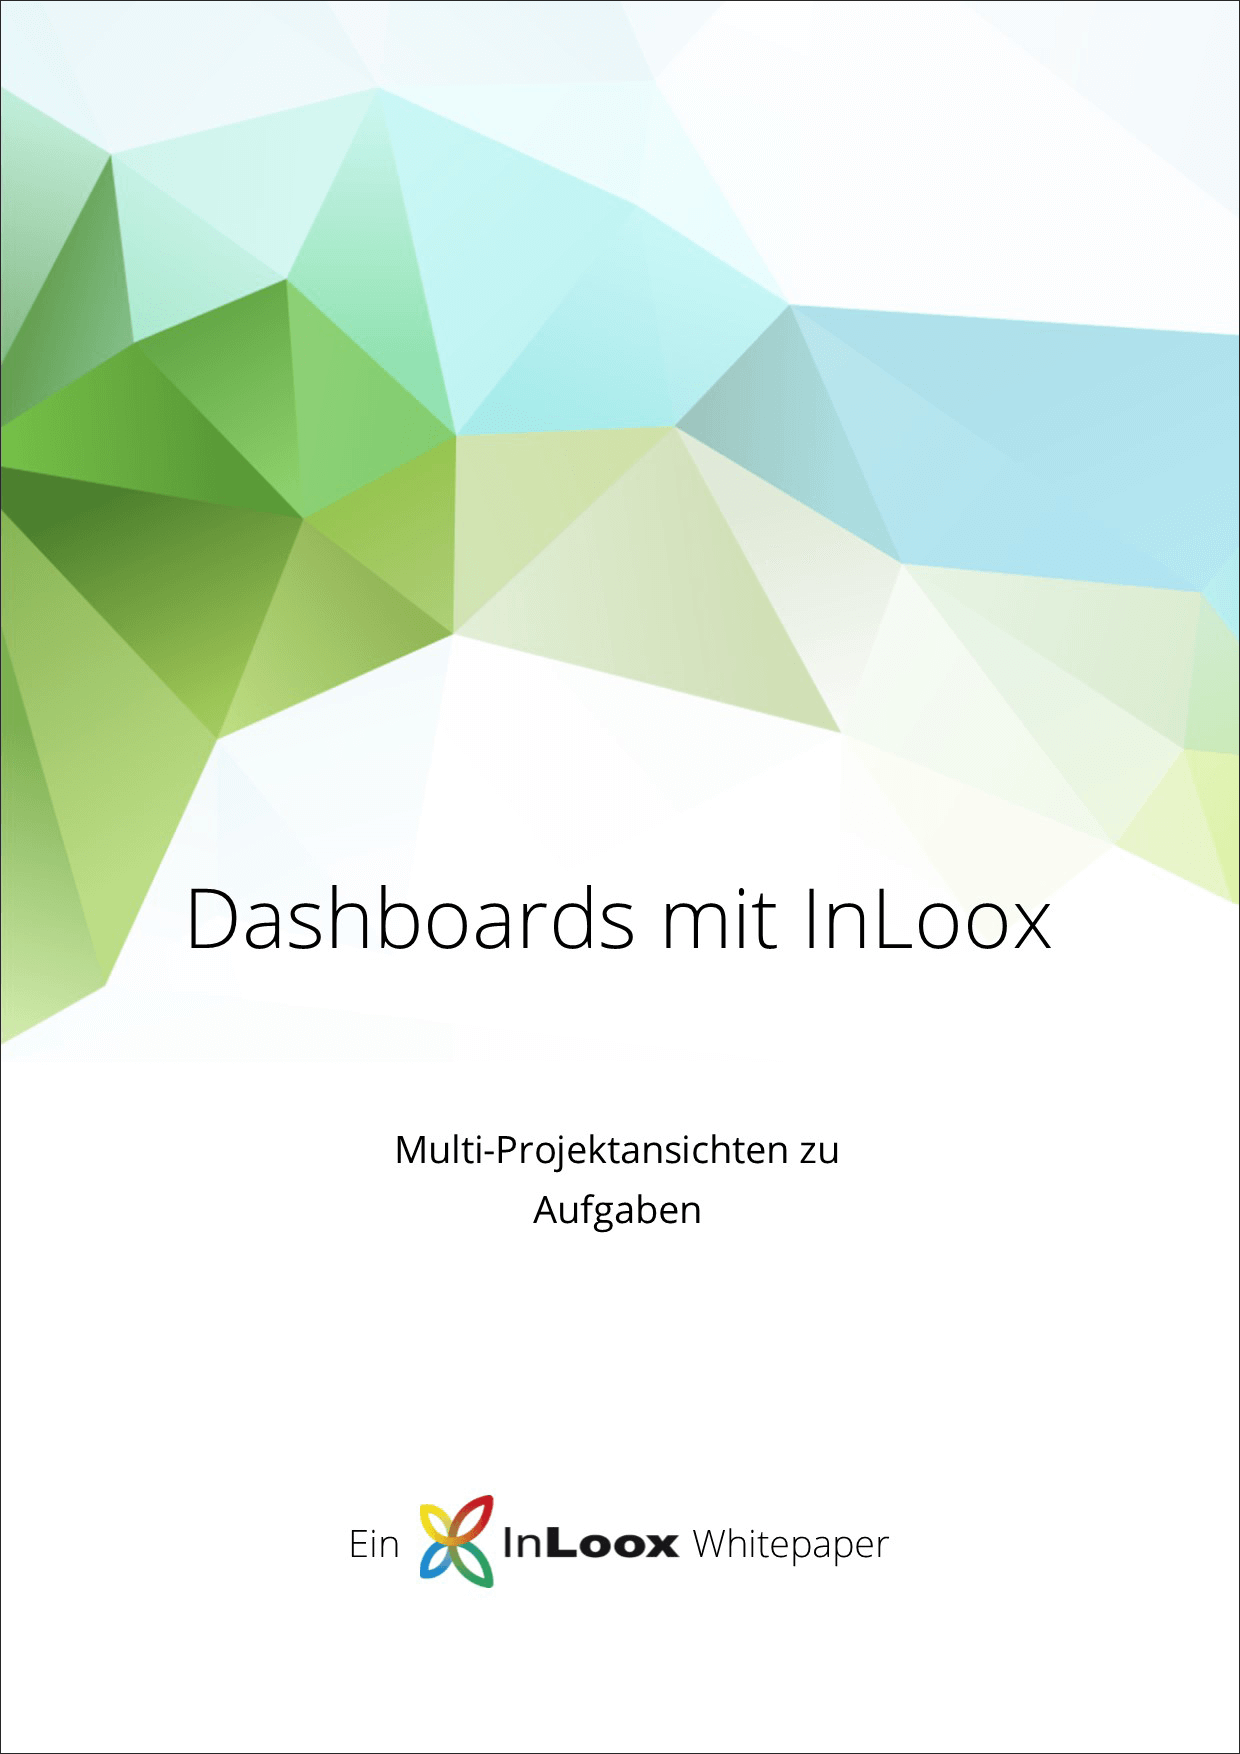 Whitepaper: Dashboards mit InLoox